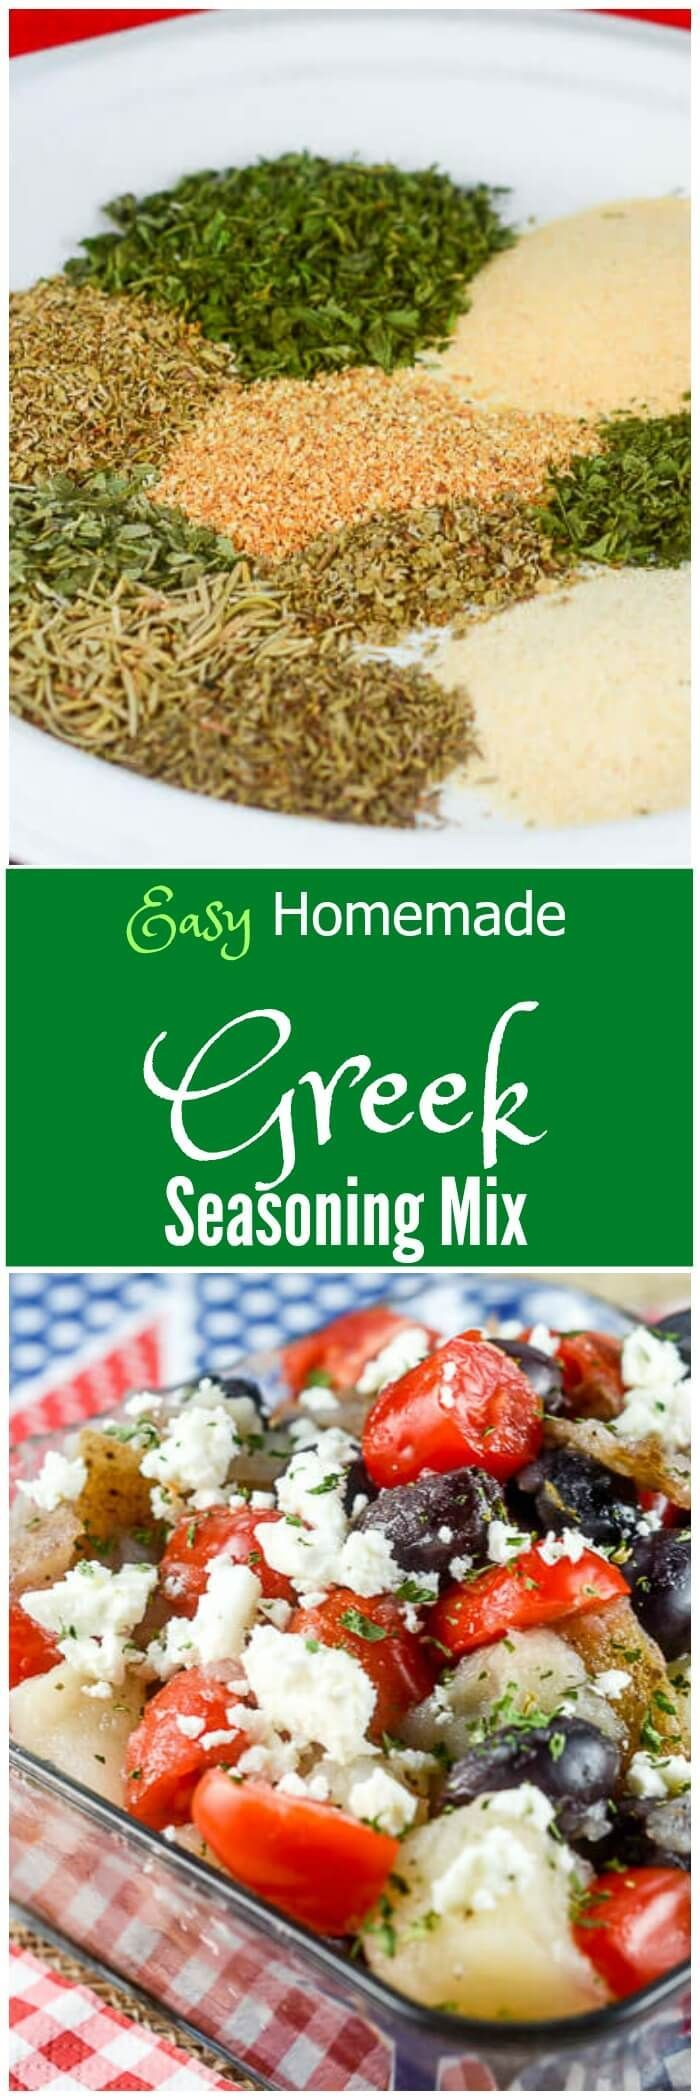 This Easy Homemade Greek Seasoning Mix recipe is a budget friendly option to add bold Greek flavors to your favorite dishes or recipes. via @flavormosaic